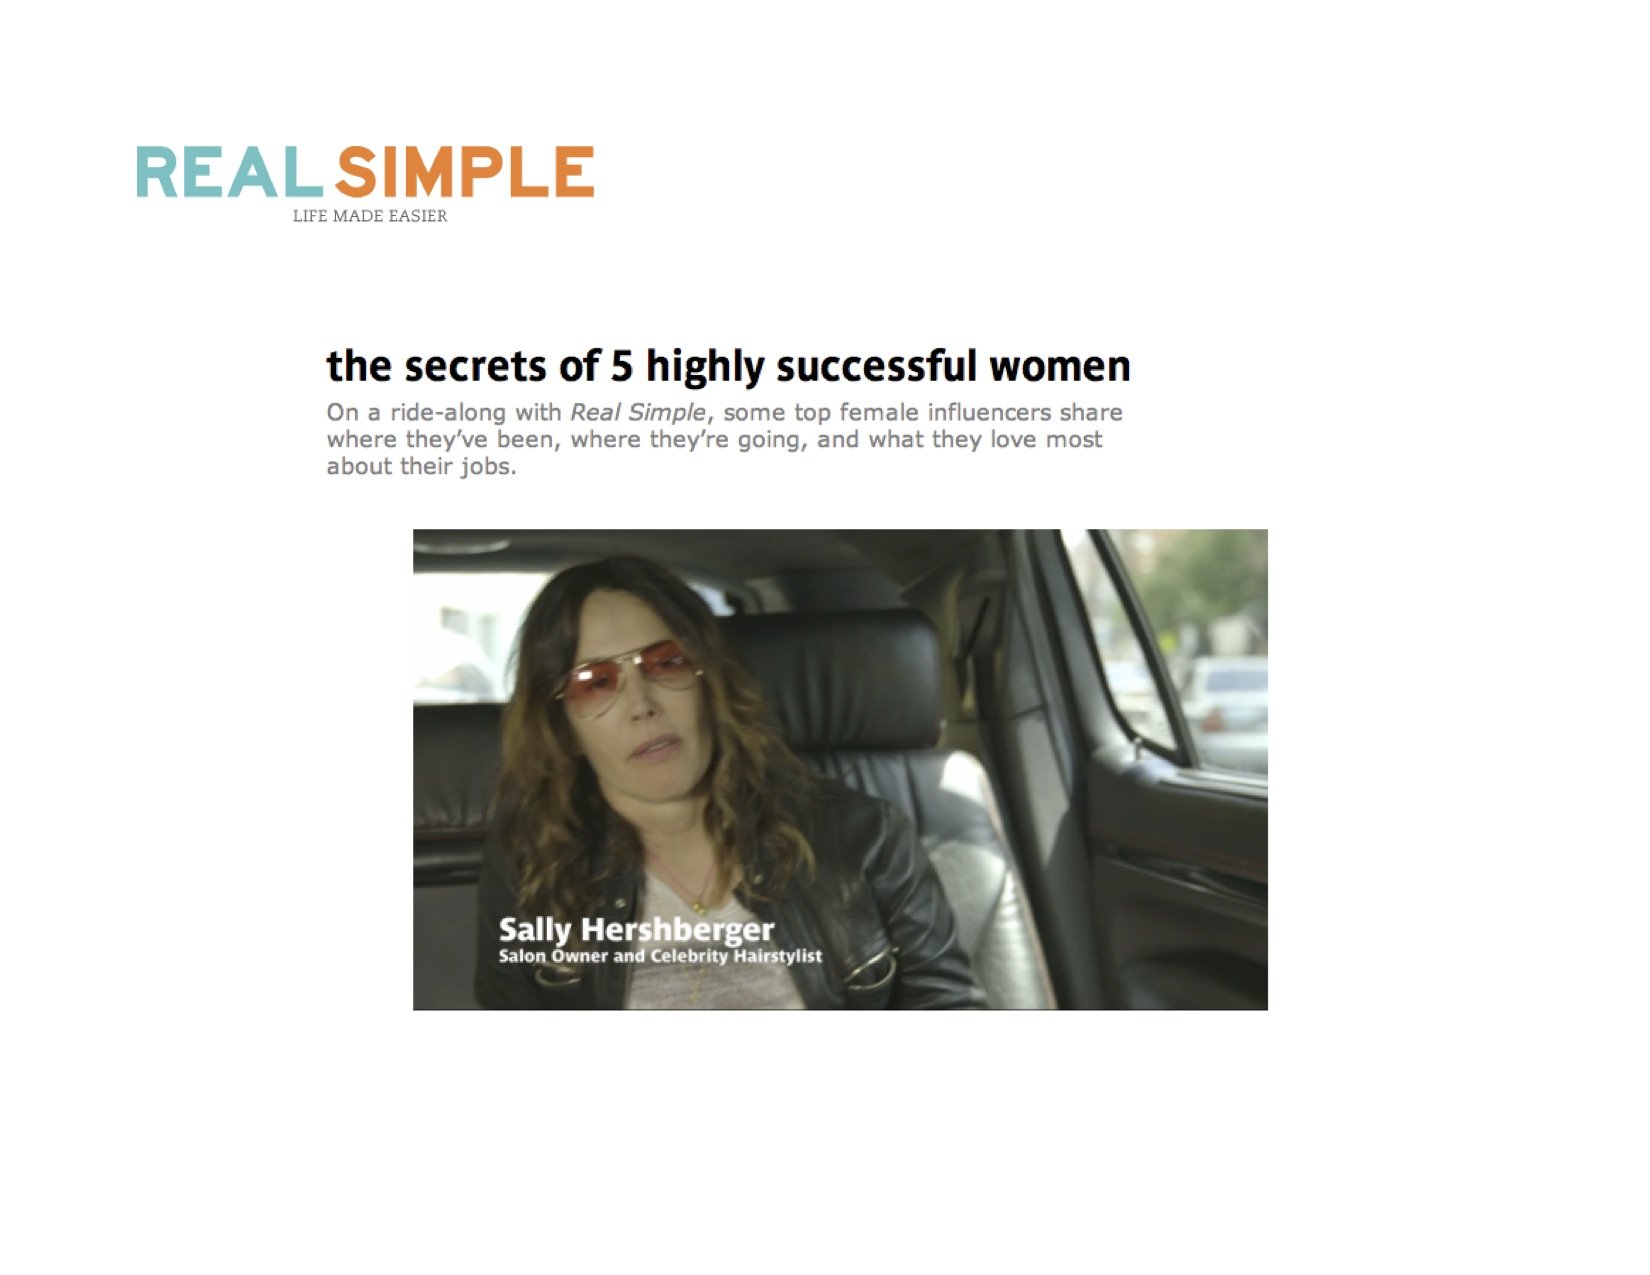 Sally Hershberger - Realsimple.com#3 - August 2014.jpeg